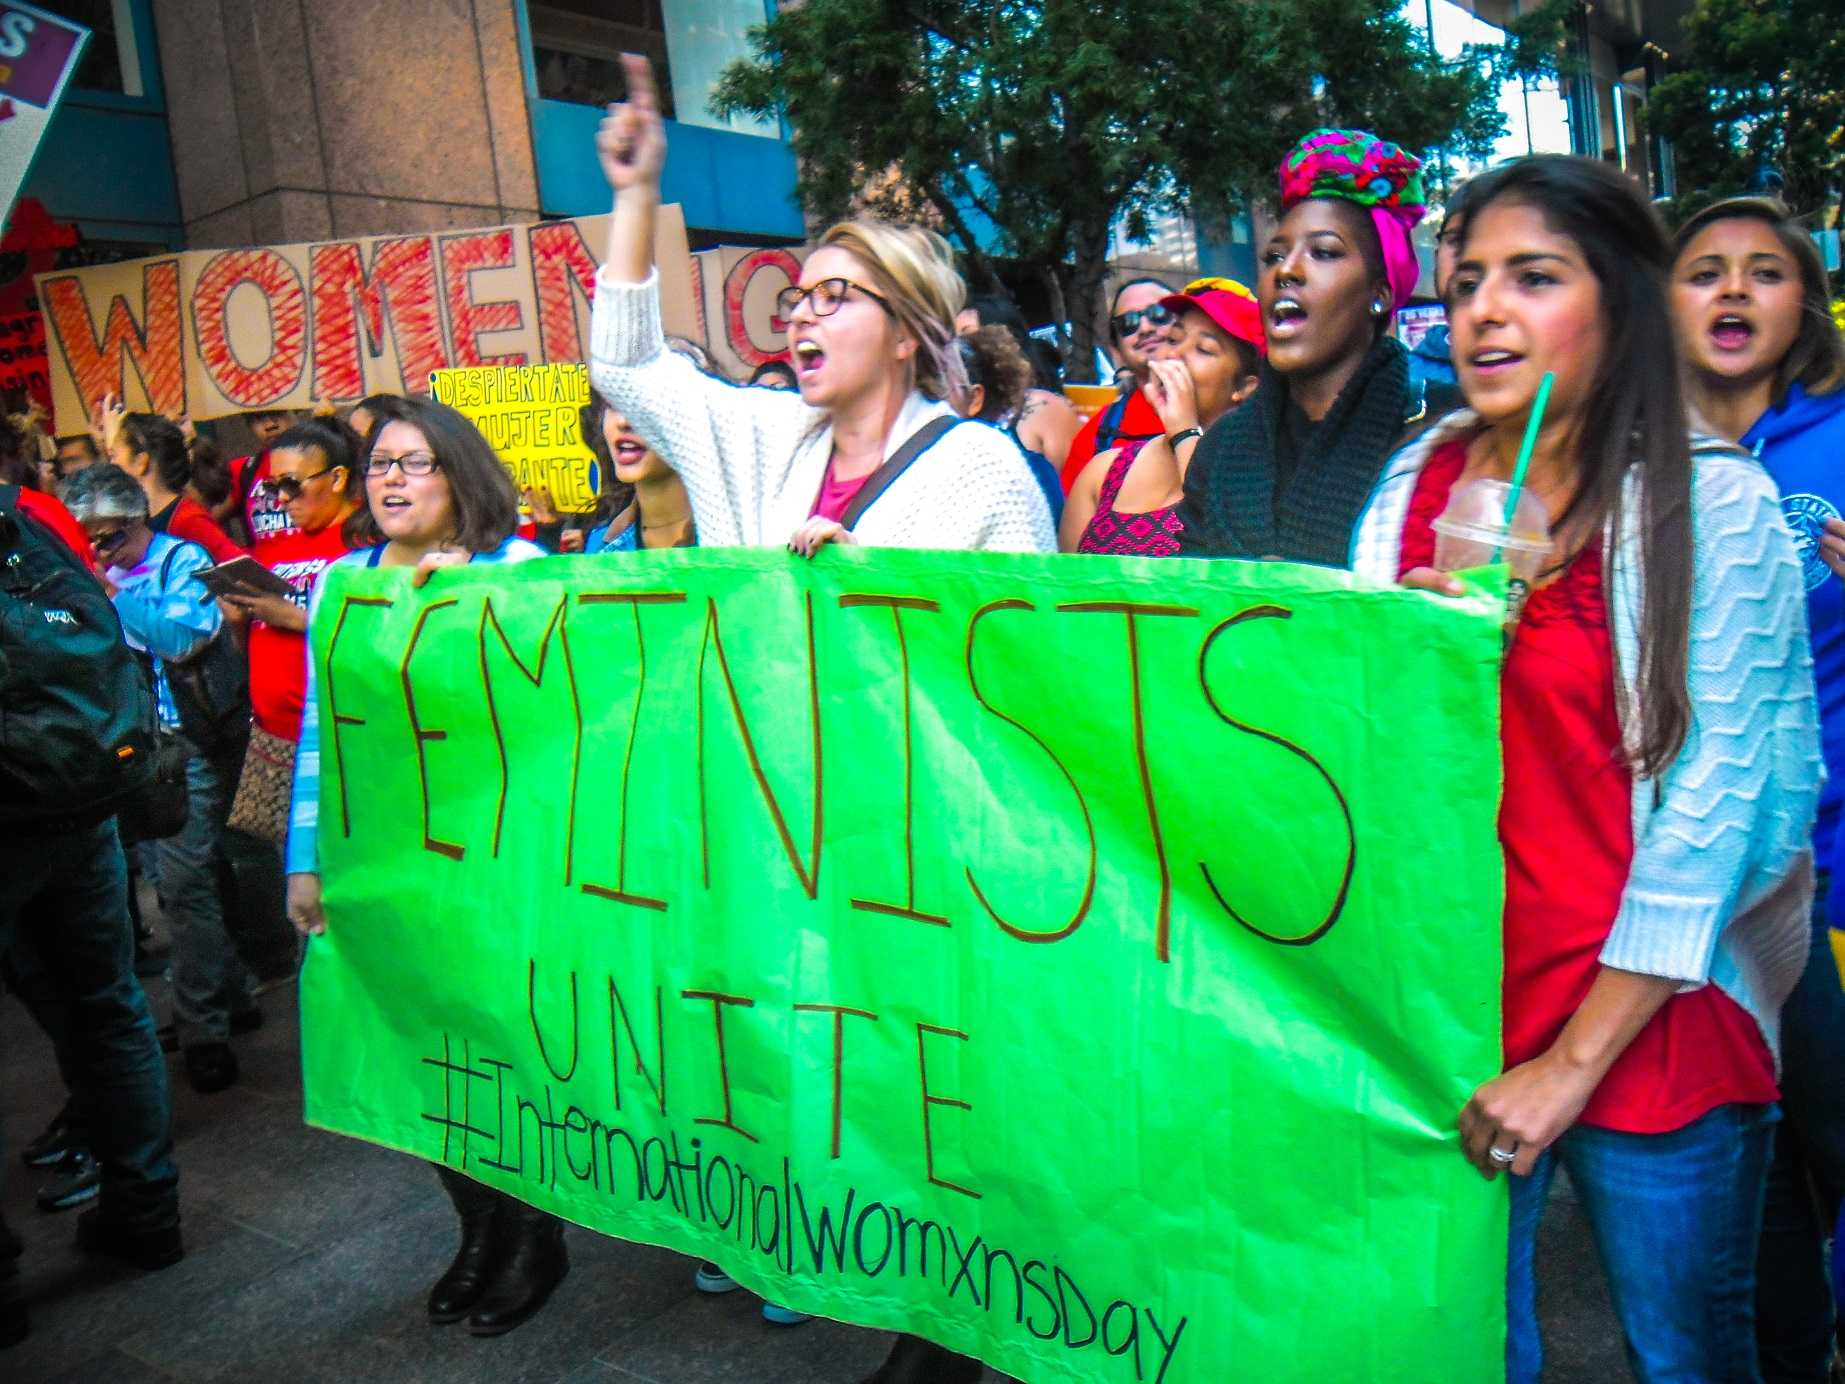 Members of CSUSM's Feminists Unite group march on International Women's Day.